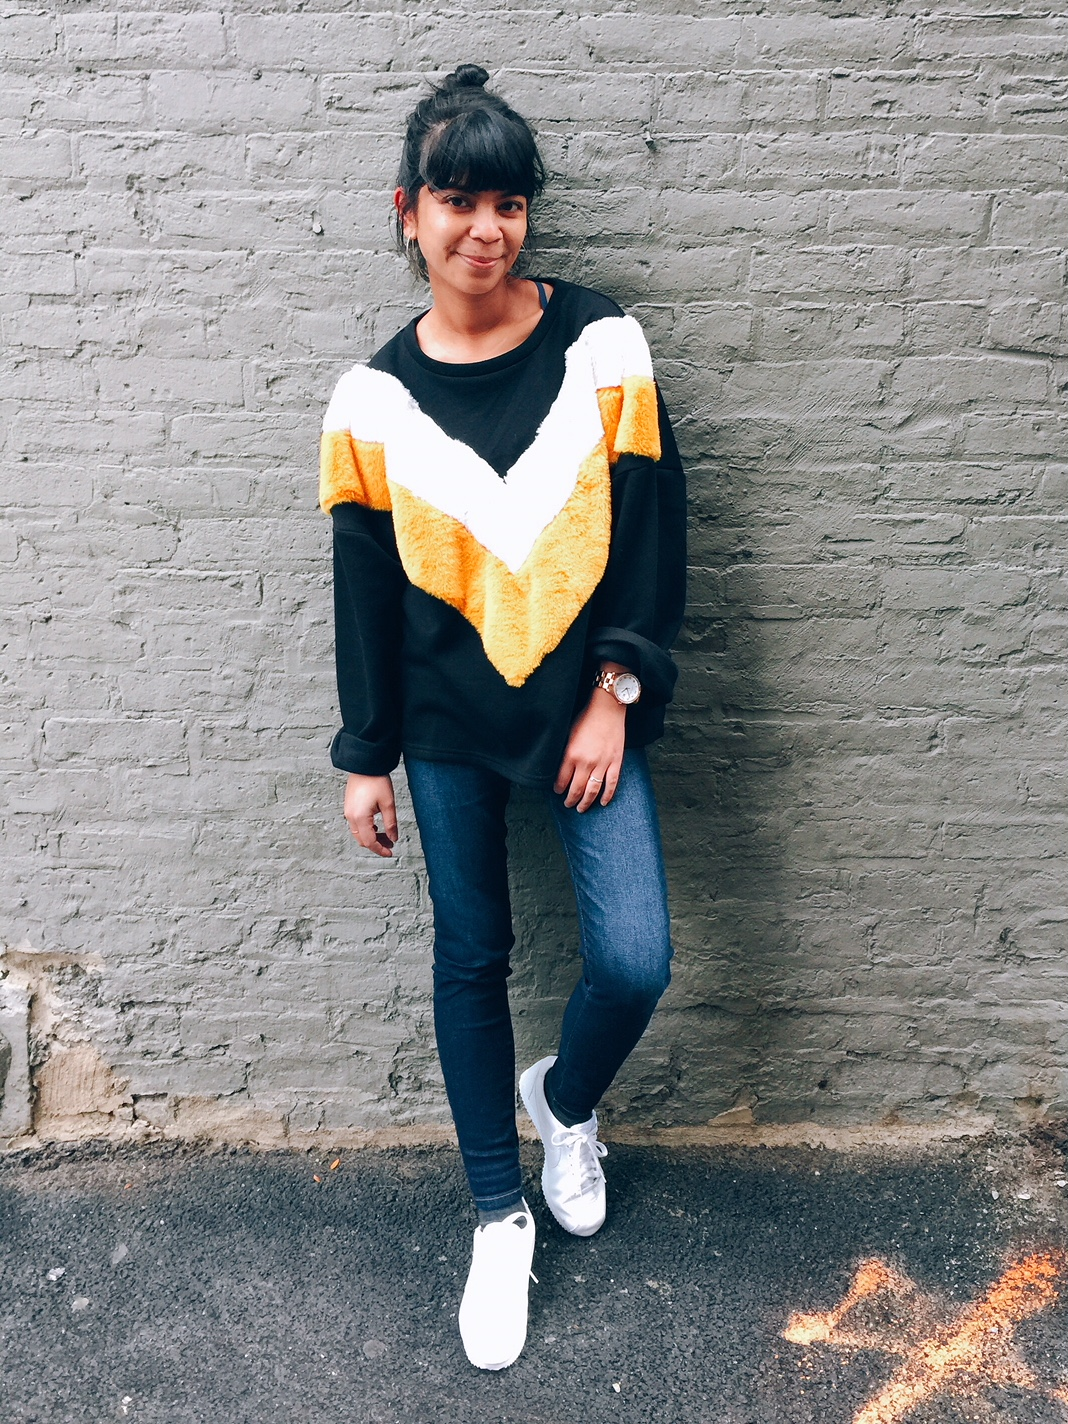 portland fashion blogger, zara, faux fur trim sweater, liver pool dark skinny jeans, nike white cortez, portland fashion, chicago street style, filipina fashionista, affordable fashion, the ptowngirls,